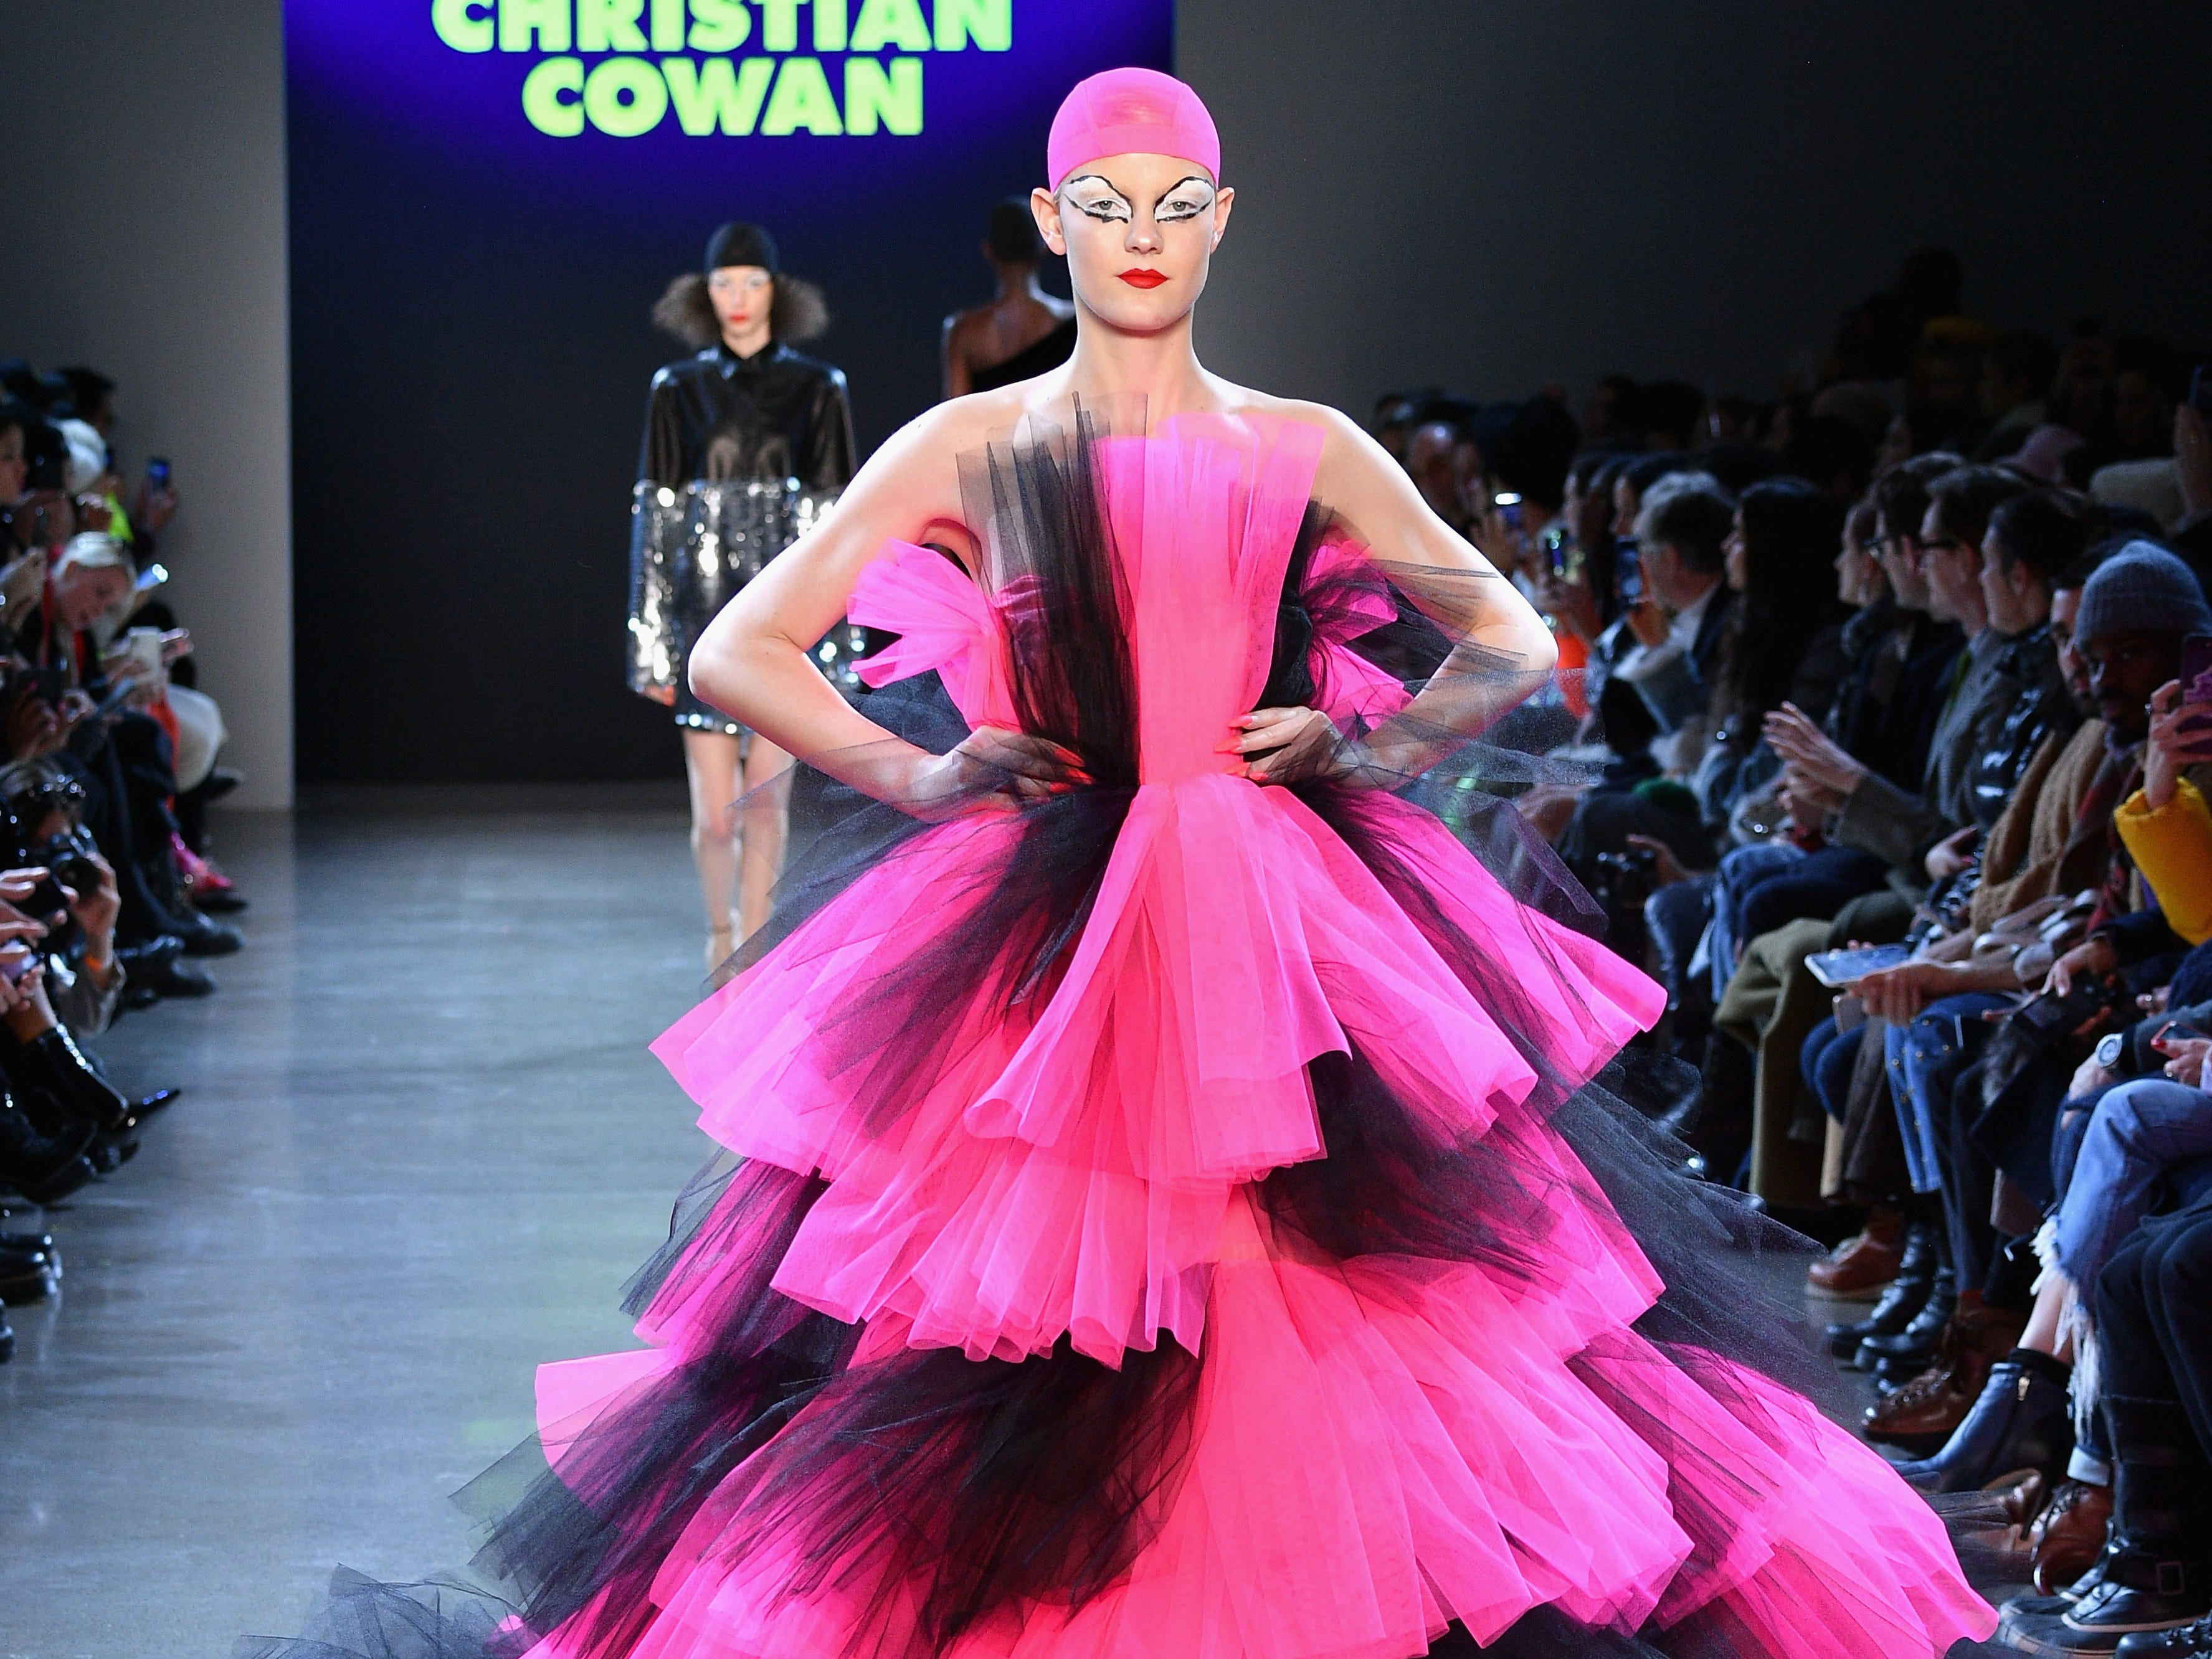 NEW YORK, NY - FEBRUARY 12:  A model walks the runway for the Christian Cowan fashion show during New York Fashion Week: The Shows at Gallery II at Spring Studios on February 12, 2019 in New York City.  (Photo by Dia Dipasupil/Getty Images for NYFW: The Shows) ORG XMIT: 775290958 ORIG FILE ID: 1124278370